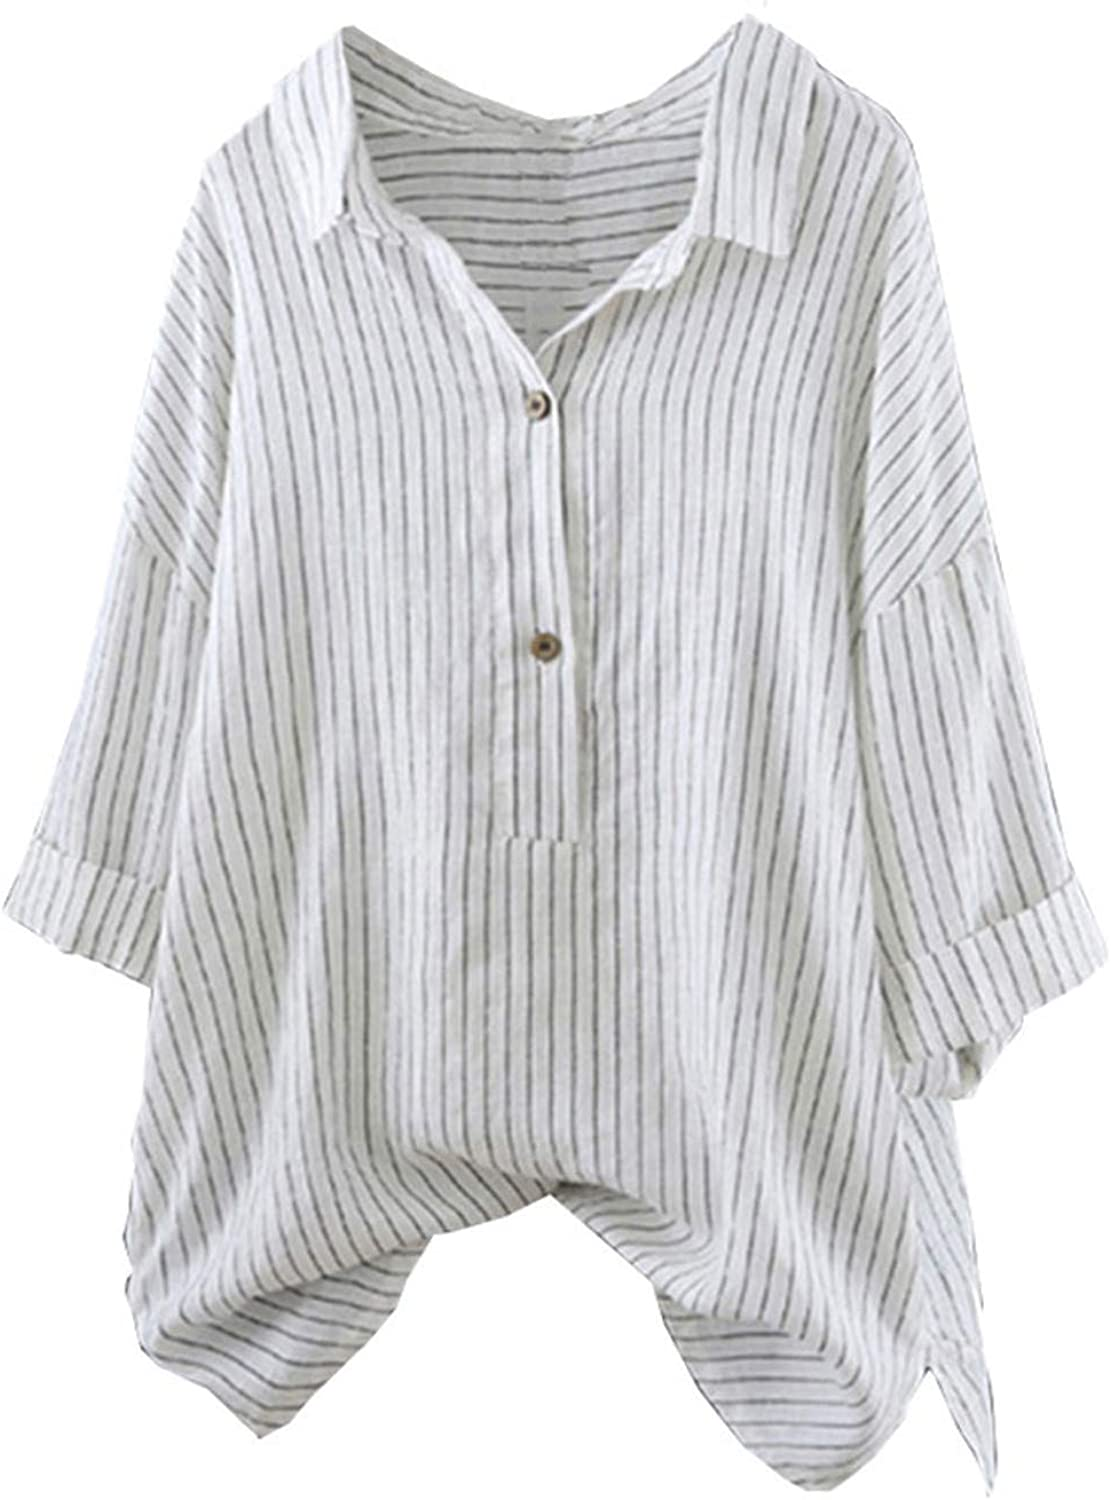 3/4 Sleeve Shirts for Women Roll Sleeve Summer Tops Striped Tees Button Down Tunic Loose Casual Blouse T-Shirts